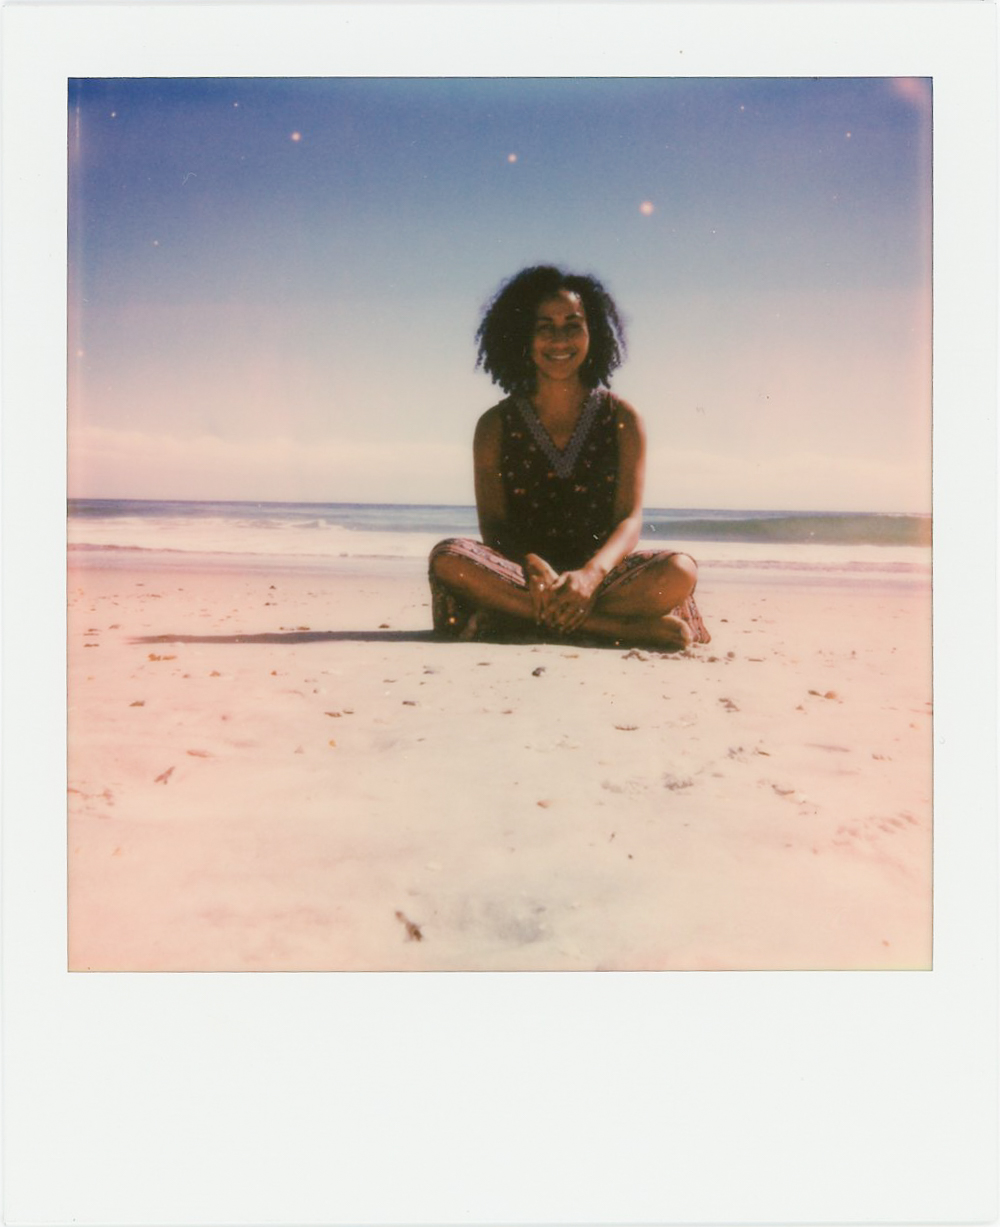 Azzari Jarrett | Polaroid One Step 2